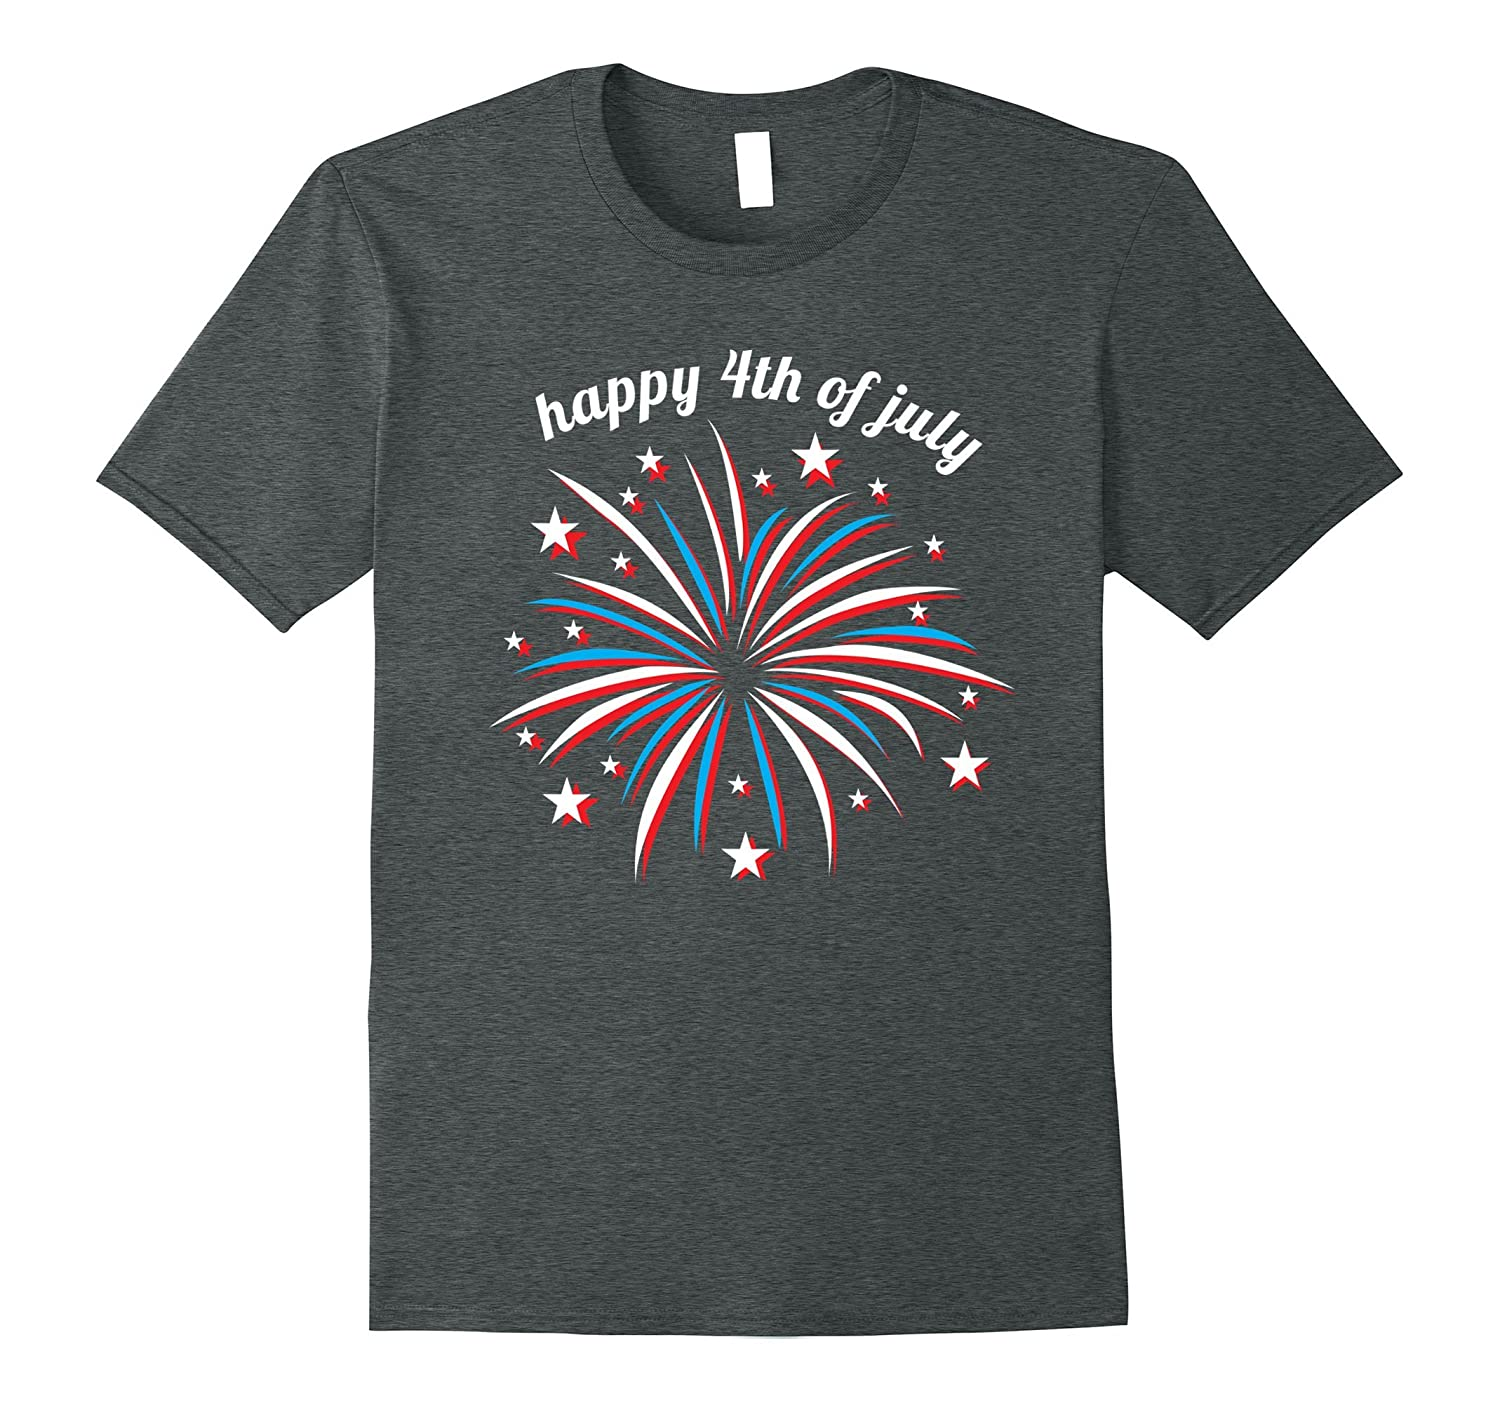 Cool Fireworks 4th of July Shirt for Women Kids Girls Family-Yolotee